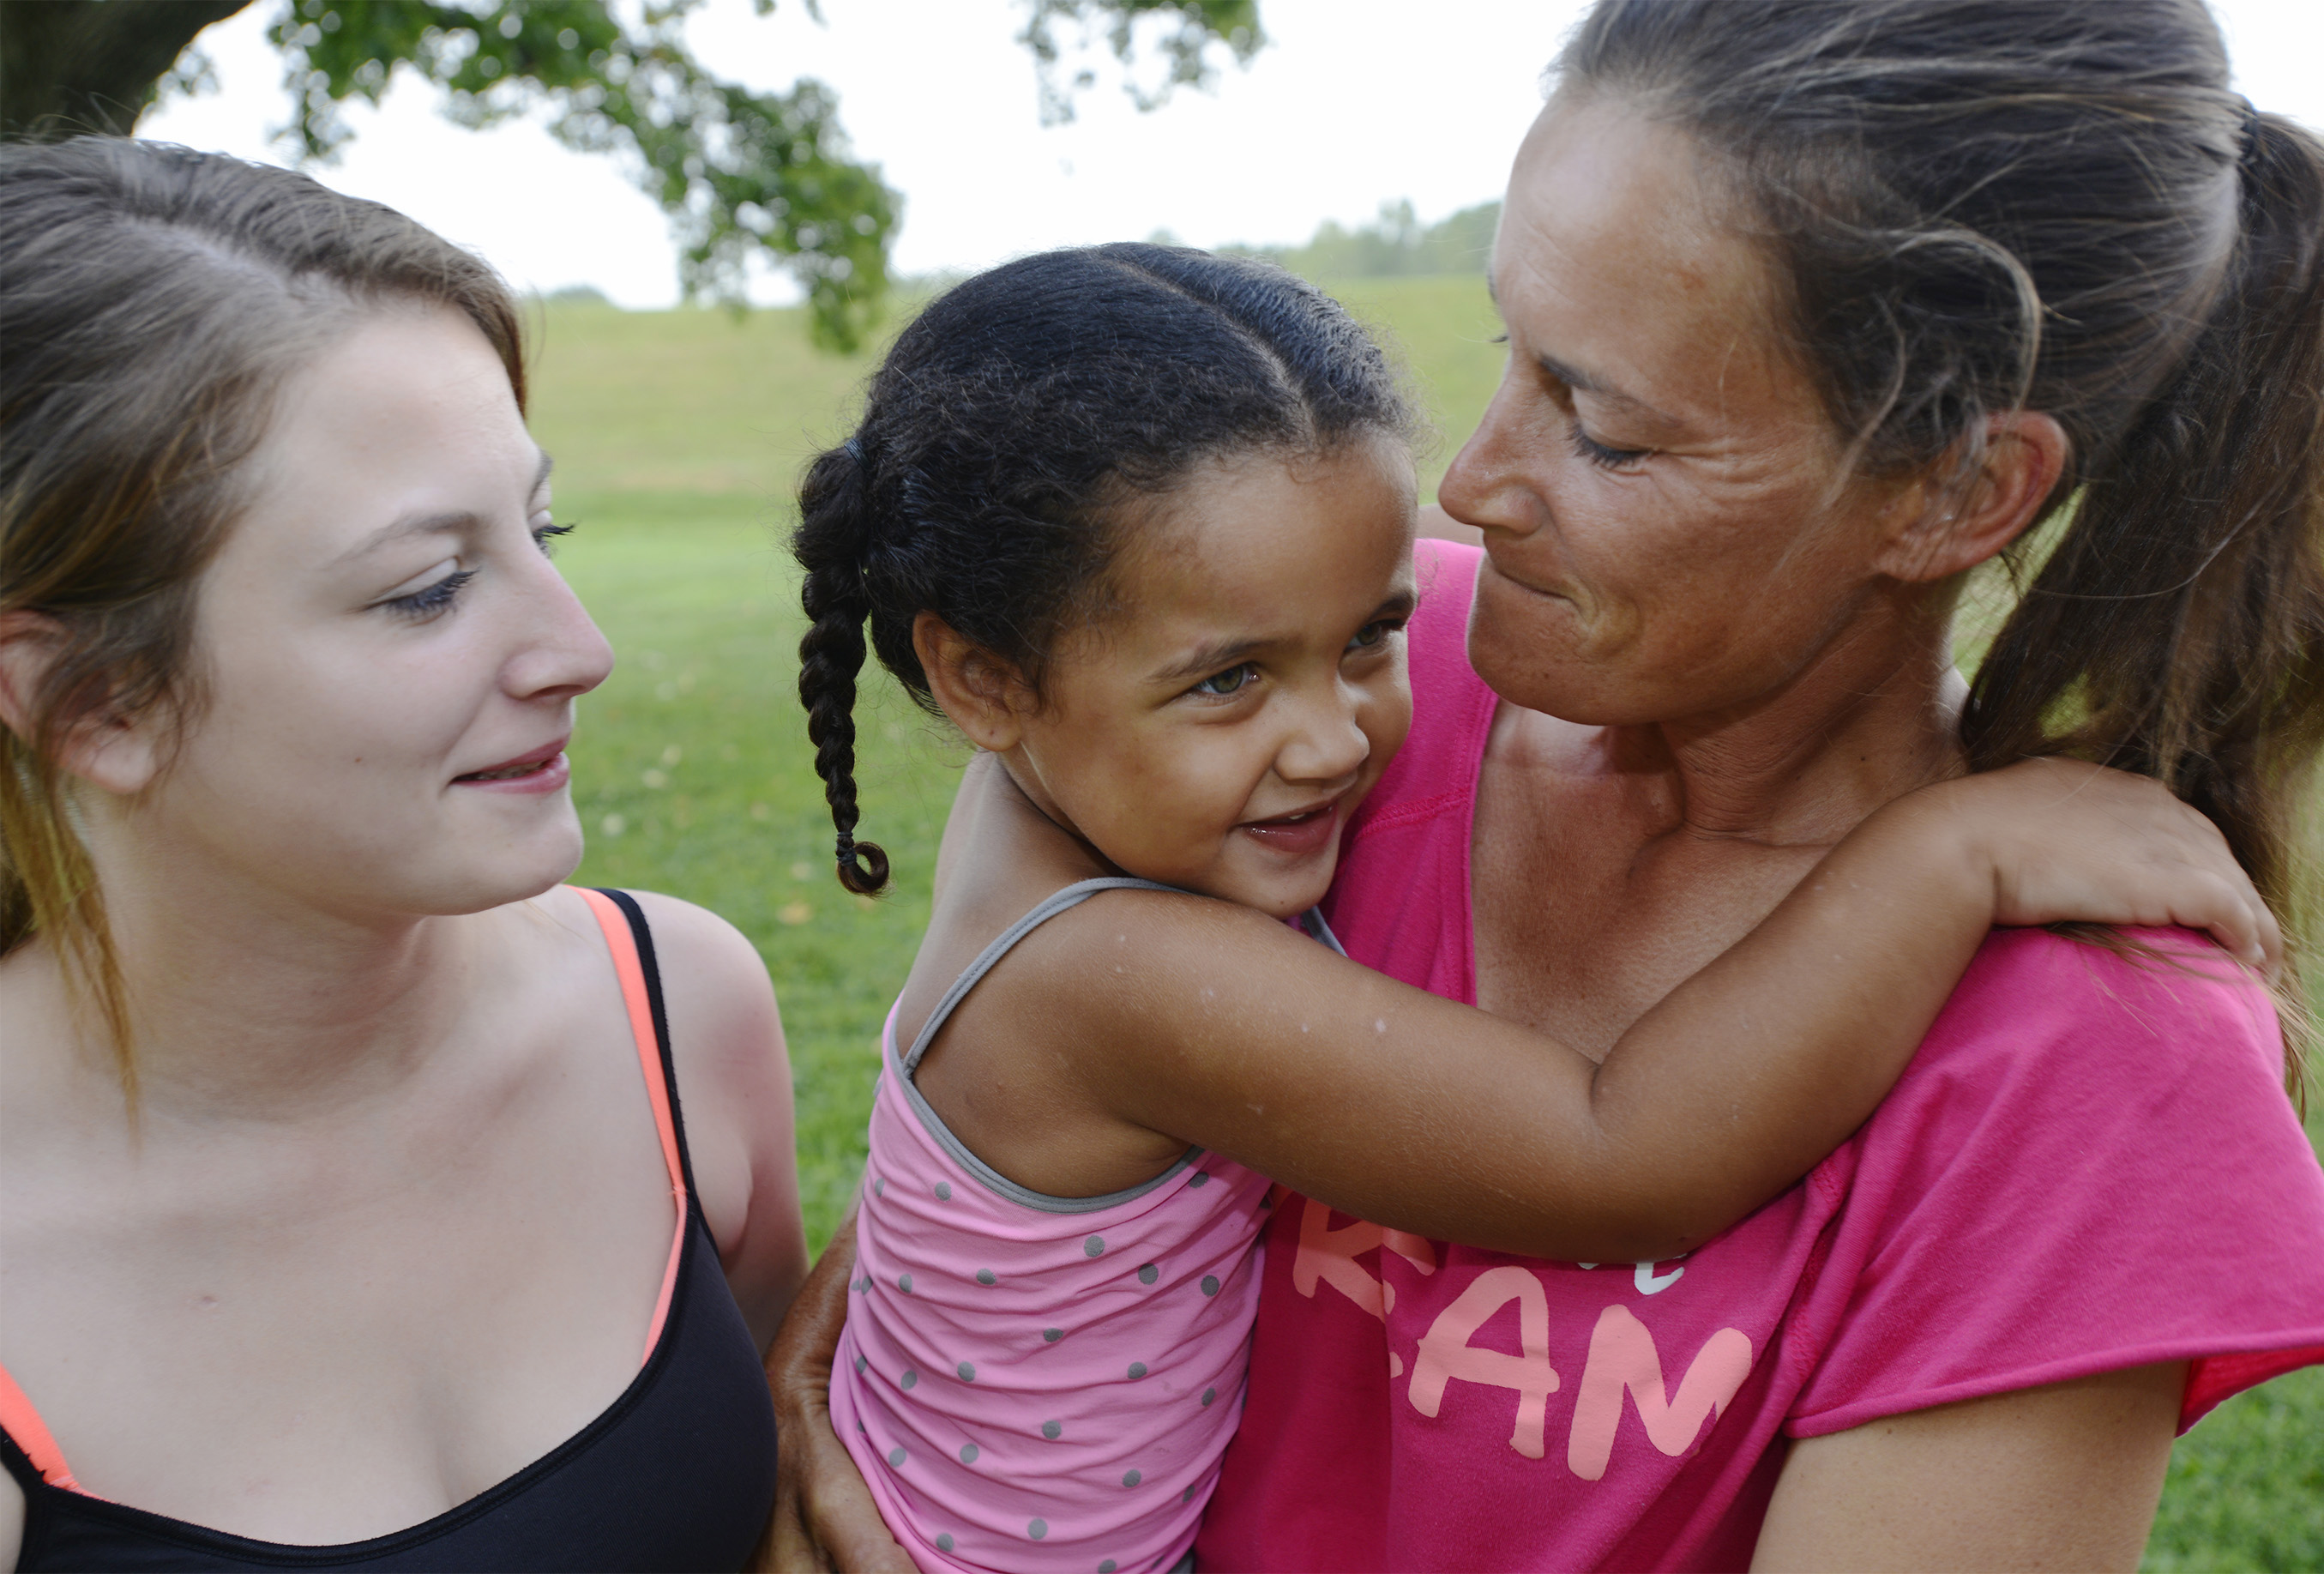 Three months after being shot by her boyfriend, Devin Liggins, who then killed himself, Chelsea Vasquez, from left, finds strength in their daughter together, Kamiya, 3, and with her mother Candy Rodriguez. Vasquez has undergone extensive surgeries to remove her spleen, part of her pancreas and half her liver, and has physical therapy three times a week.